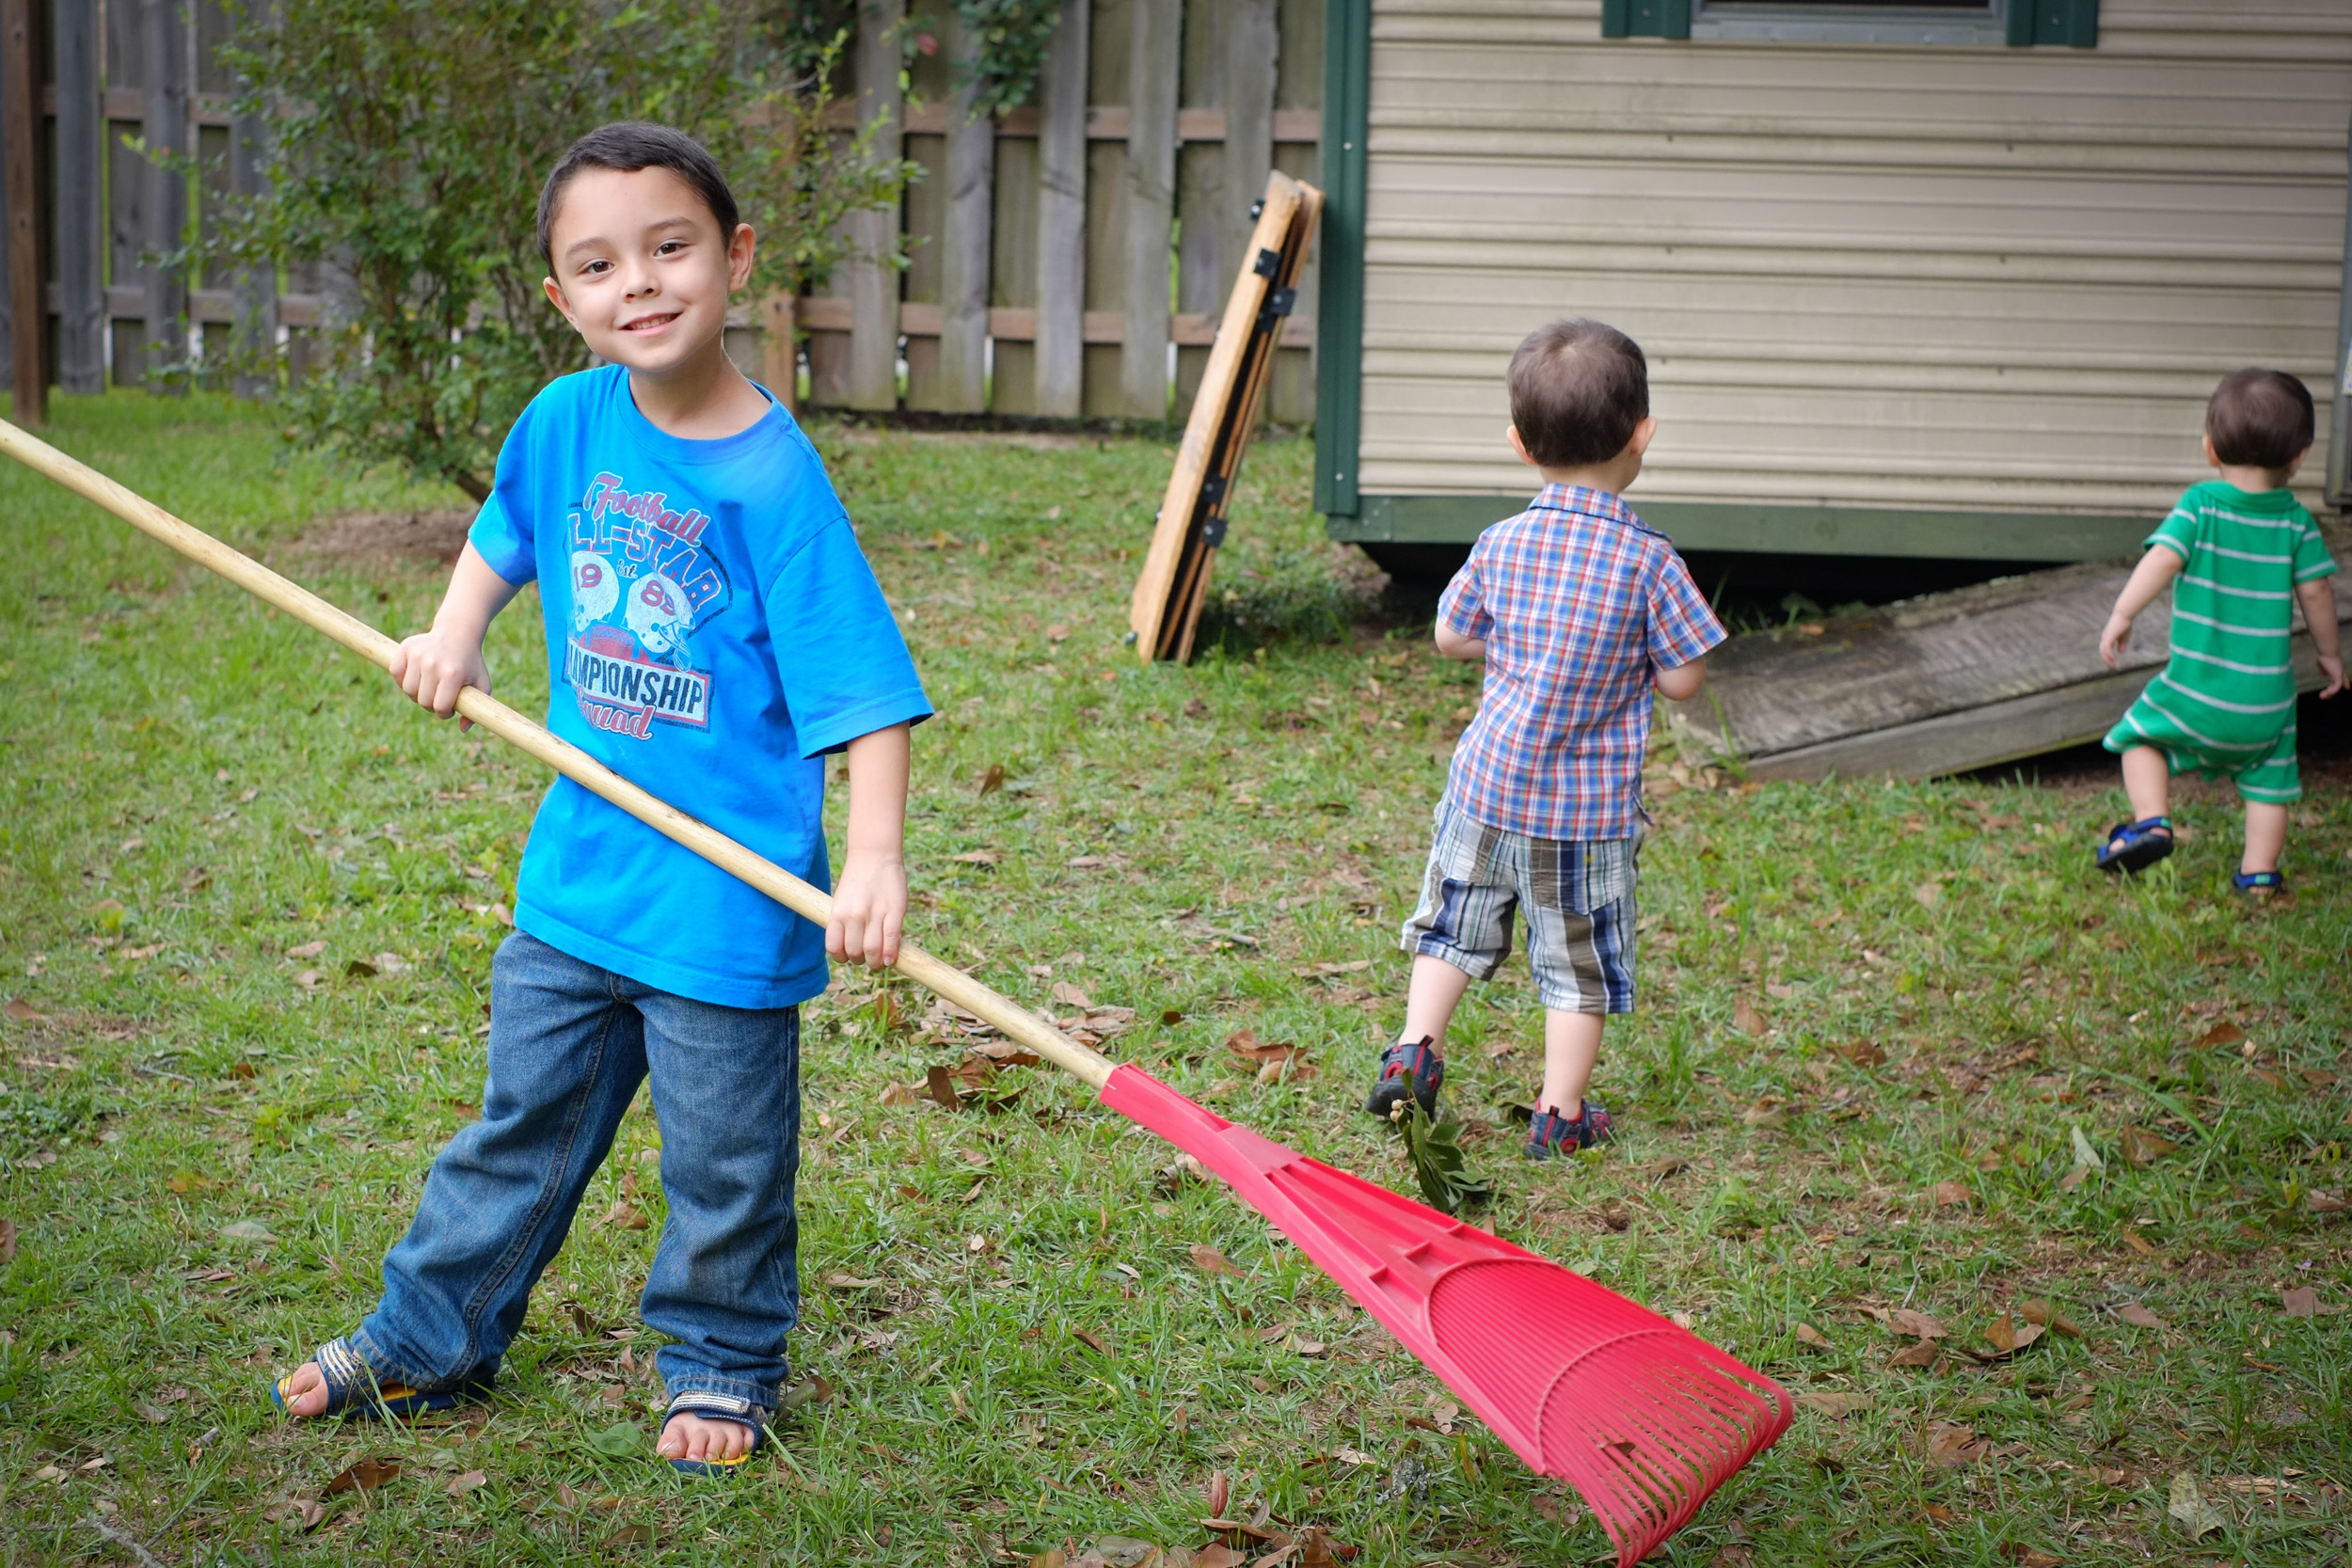 2012 - Abraham volunteered often to rake the leaves and clean up outside with his siblings. Age: 4 almost 5